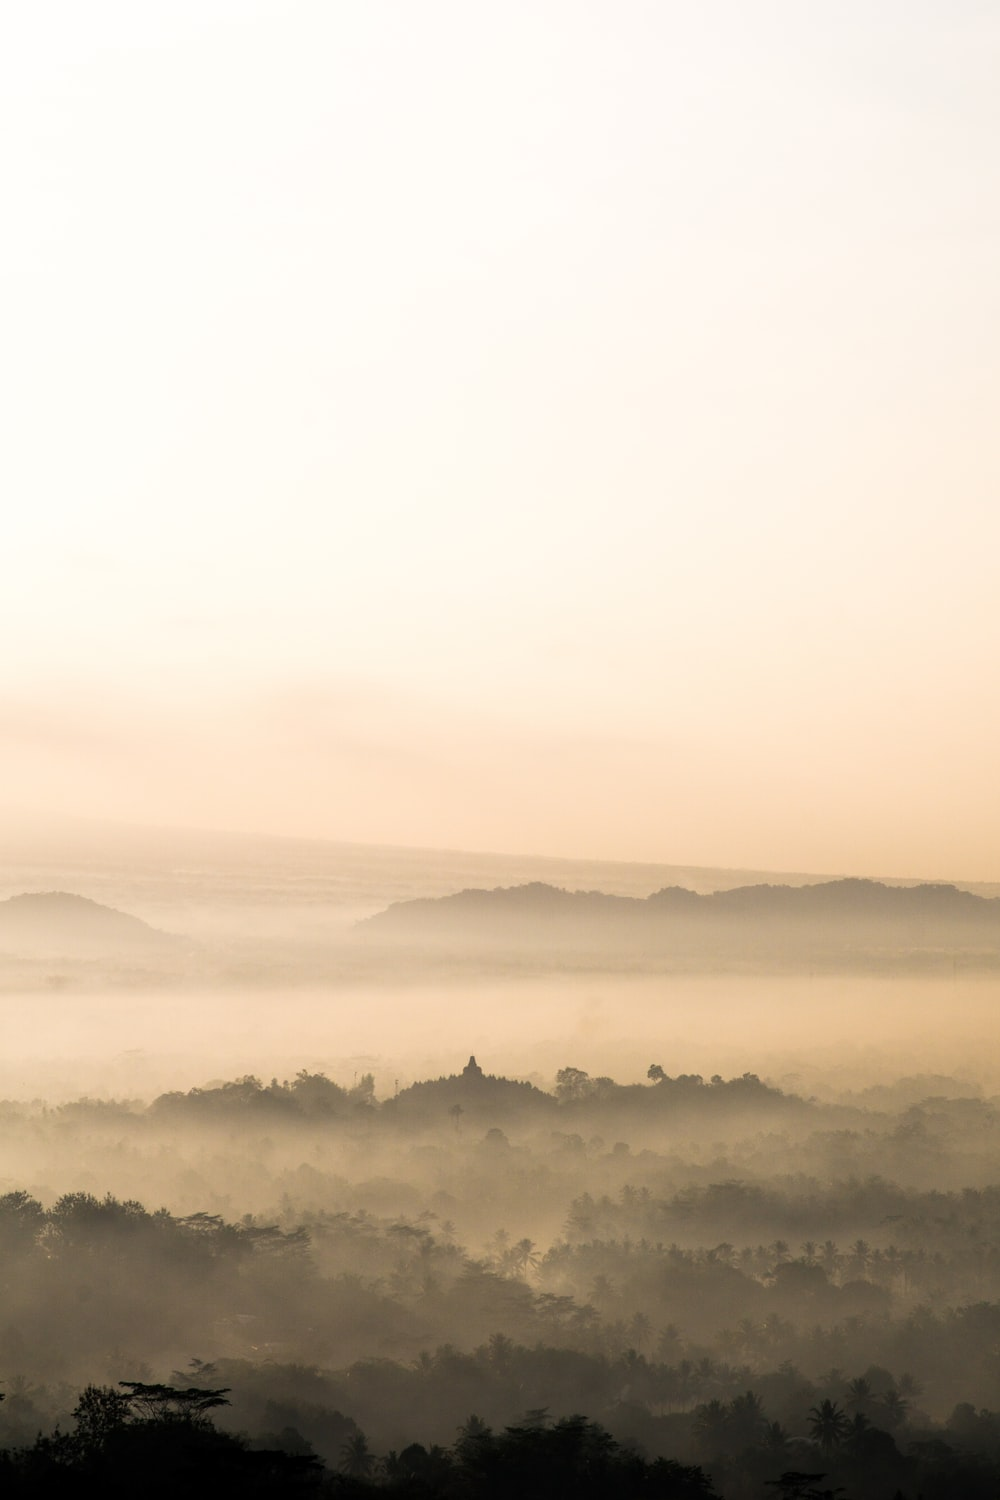 mountains under by fogs